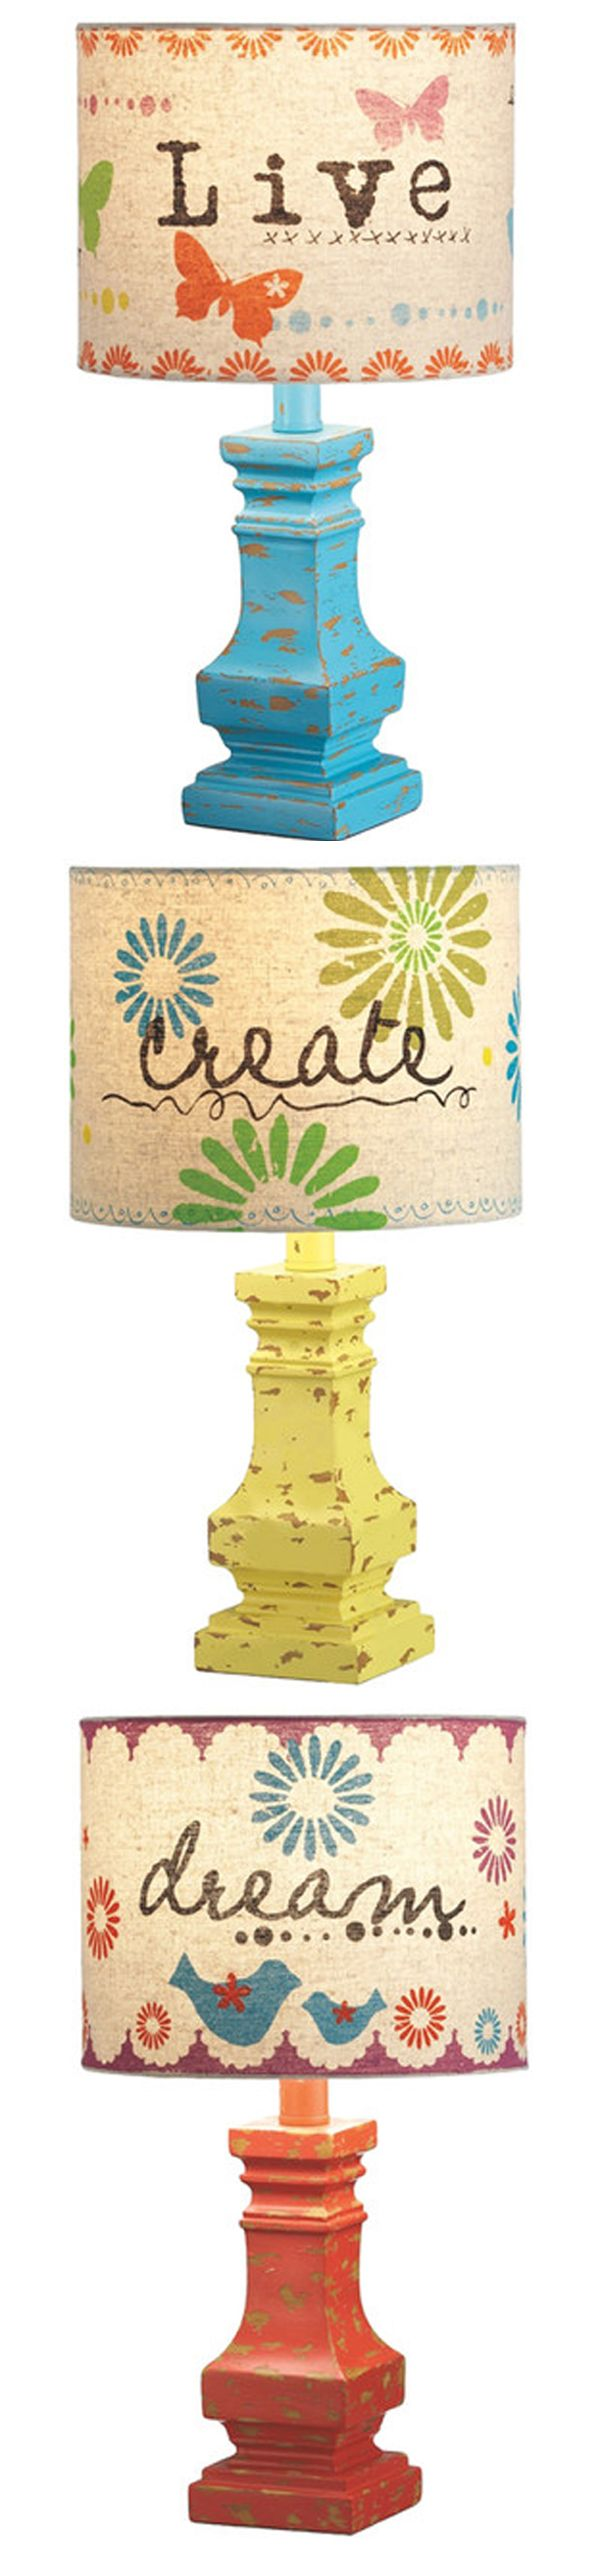 Adorable and Eclectic Lamps! #live #create #dream #quote